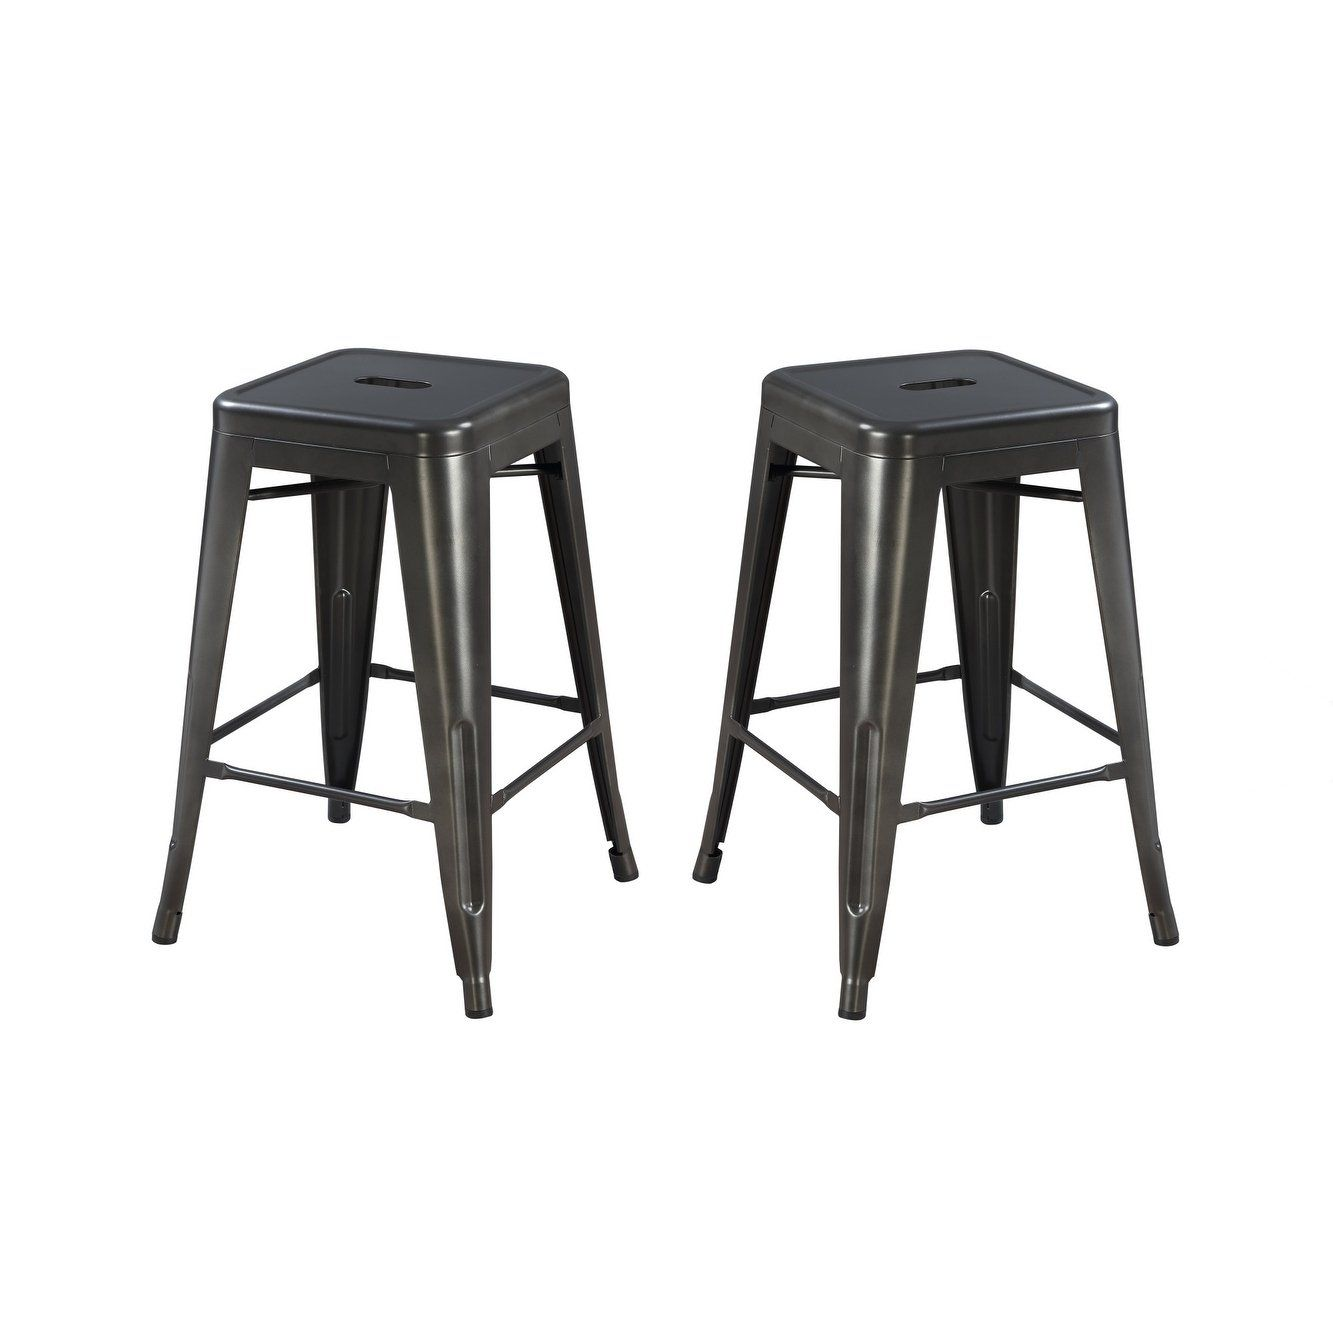 Tremendous Emerald Home Dakota Ii Gunmetal Gray 24 Bar Stool With All Ibusinesslaw Wood Chair Design Ideas Ibusinesslaworg